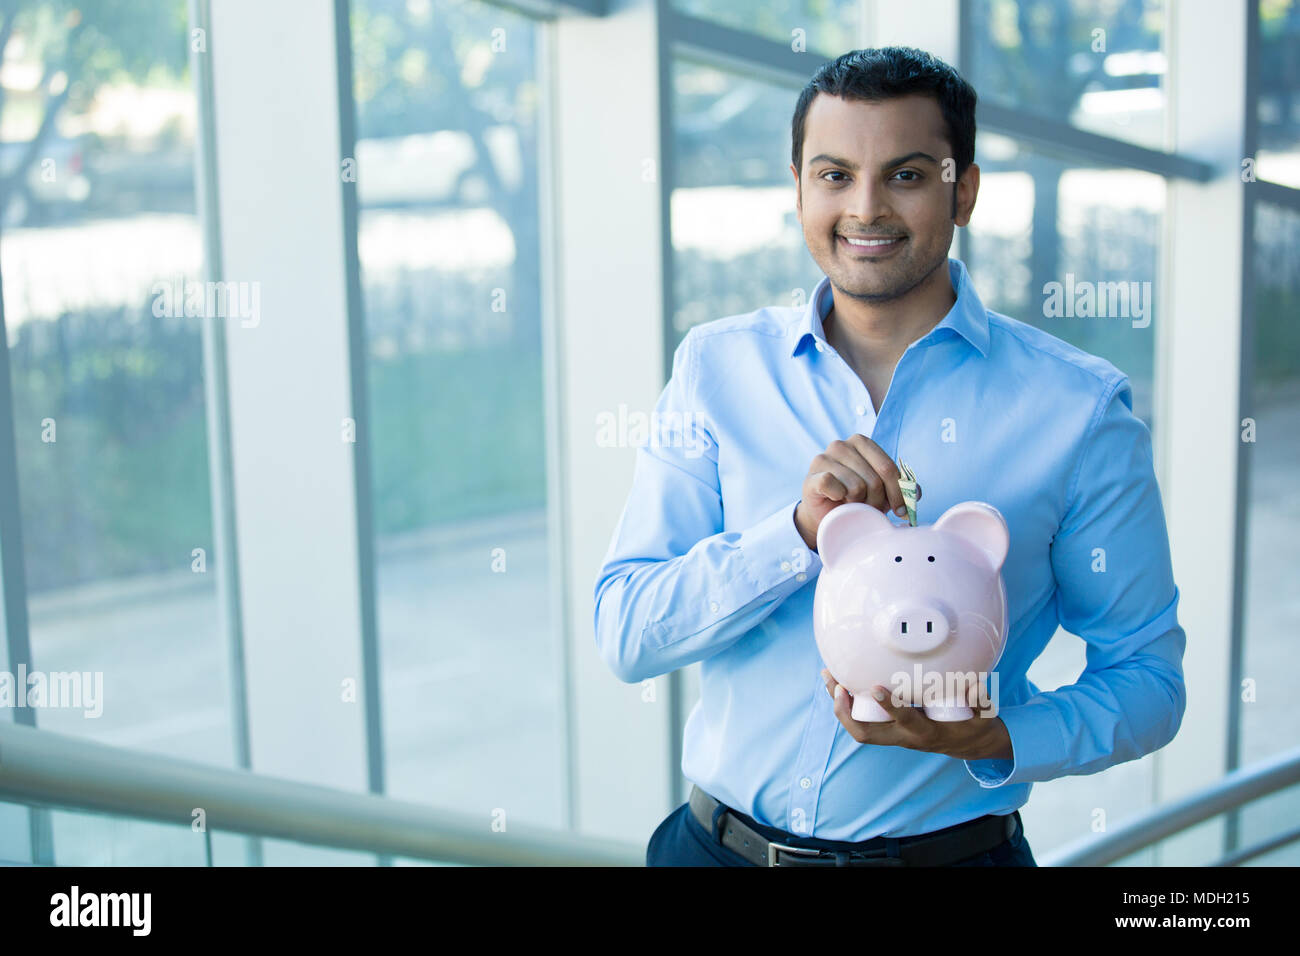 Closeup portrait happy, smiling businessman, placing money in pink piggy bank, isolated indoors office background. Financial budget savings, smart inv - Stock Image